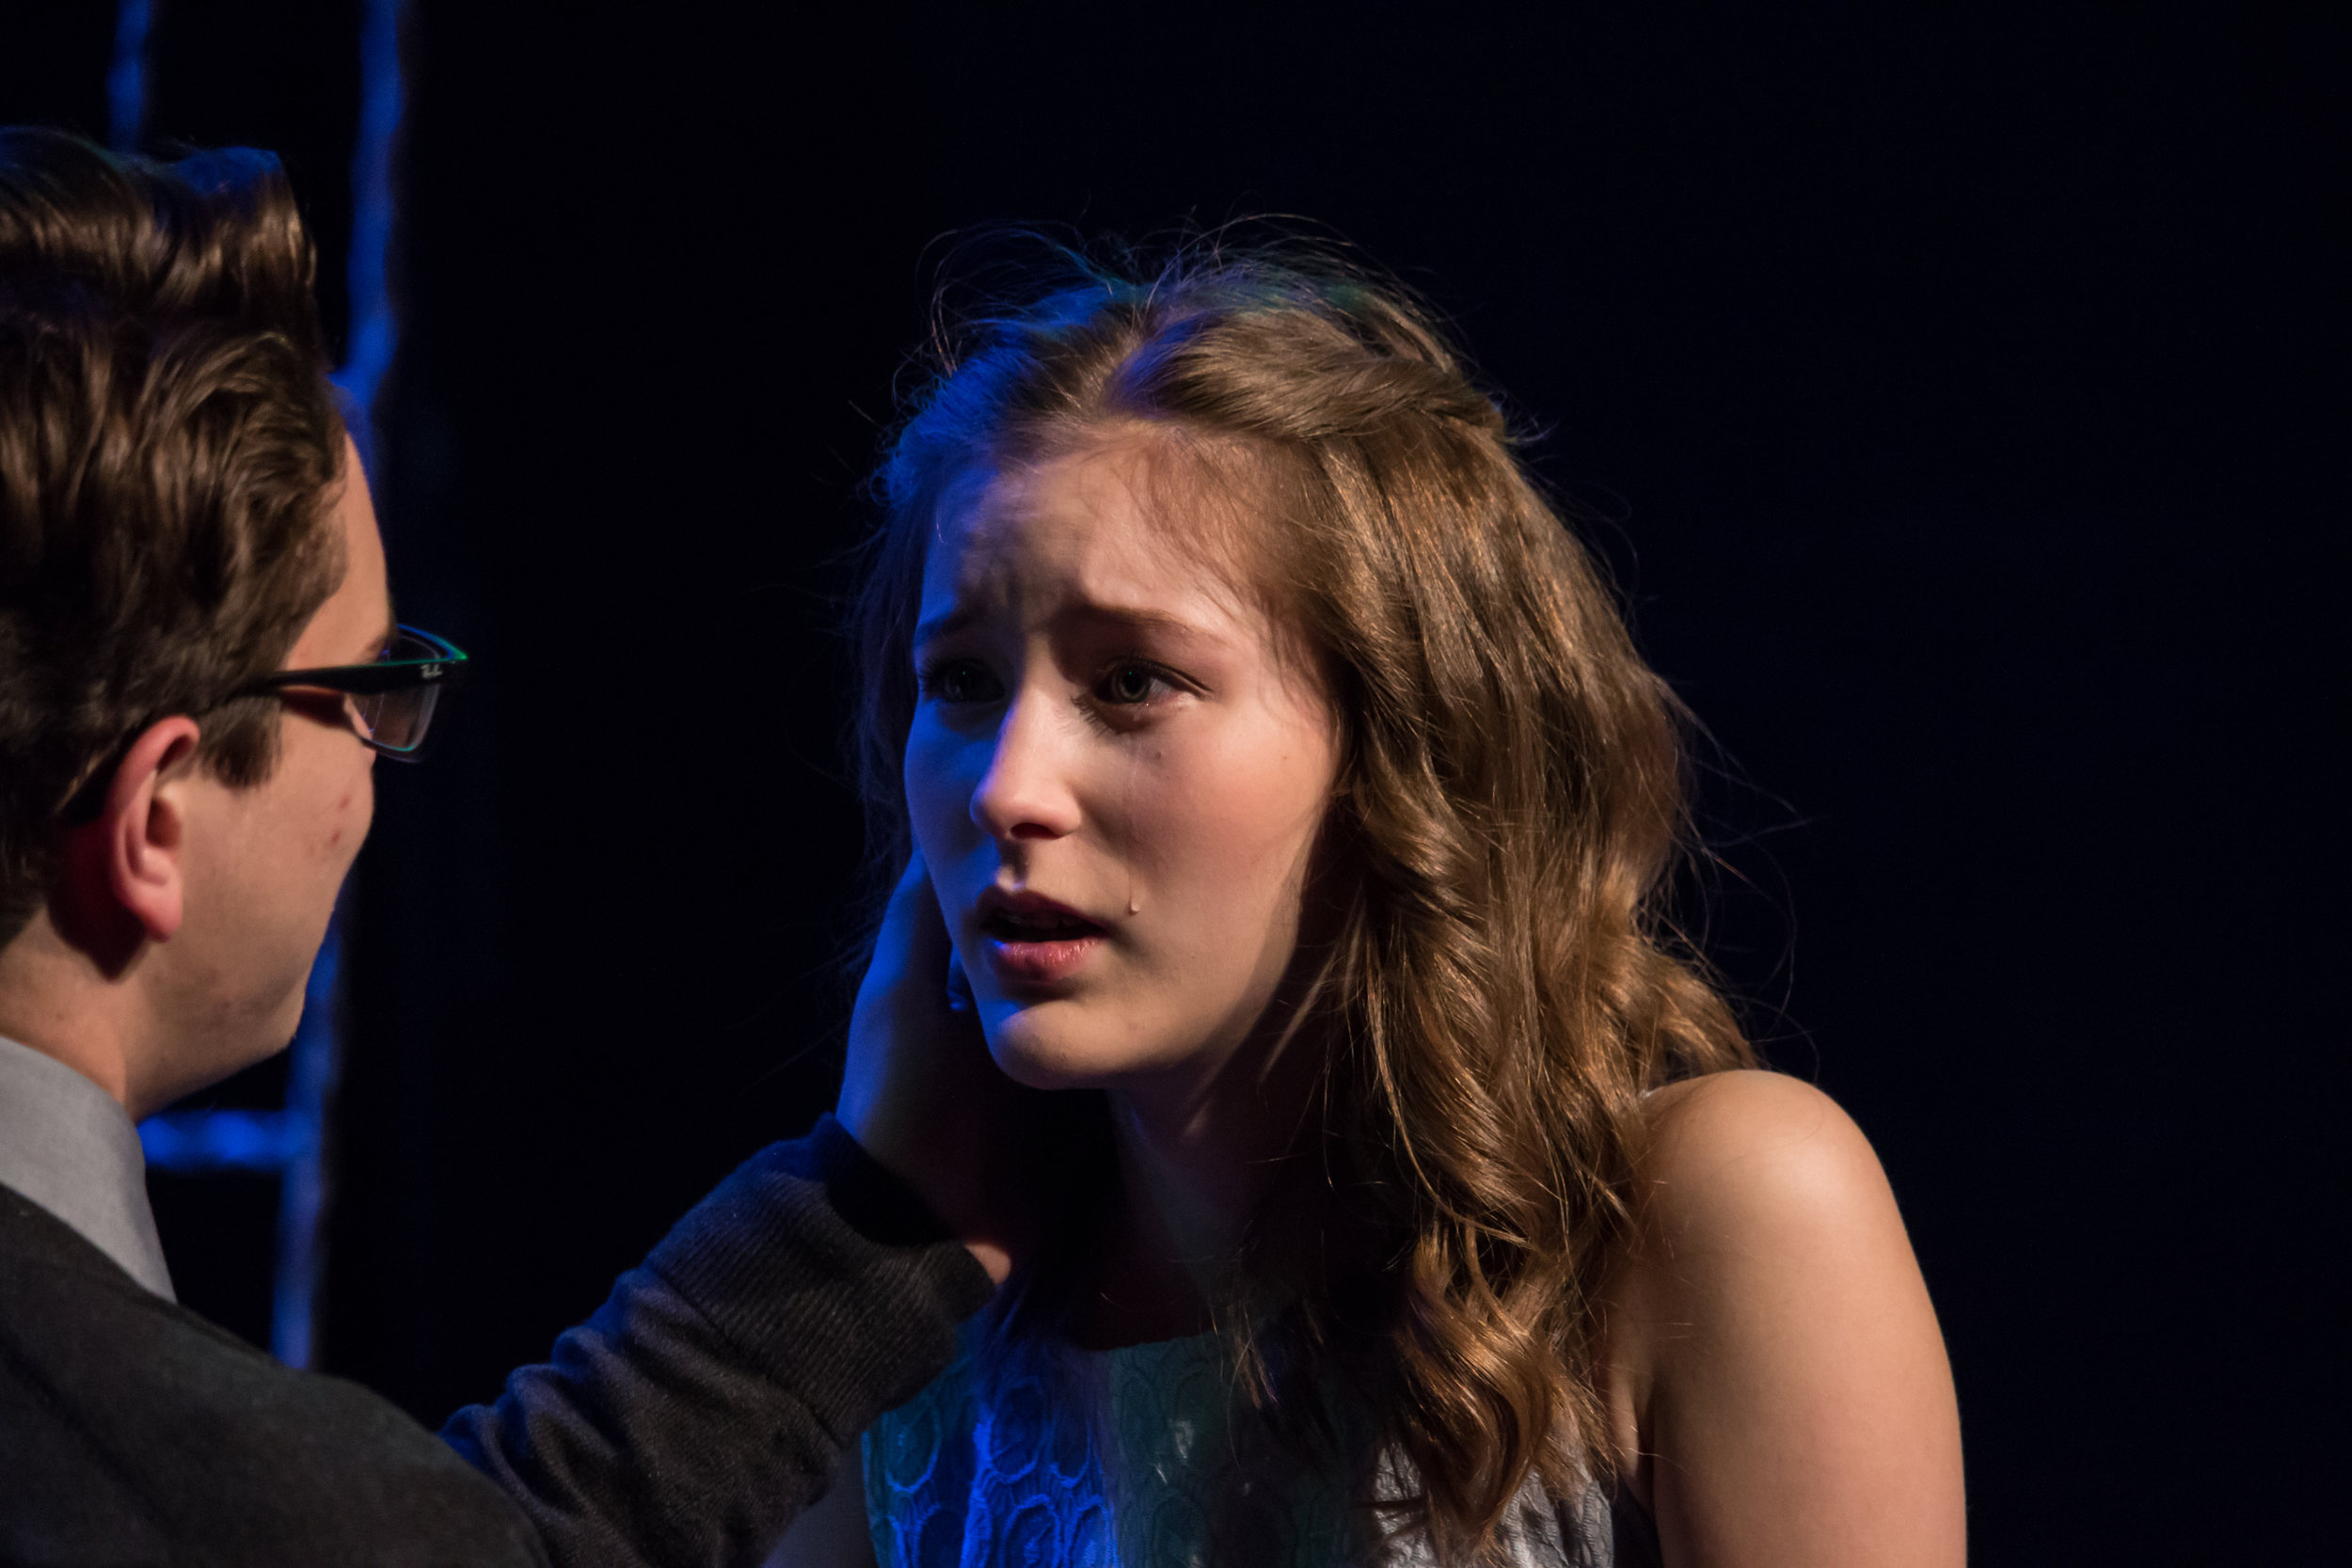 Eurydice, Outcry Youth Theatre